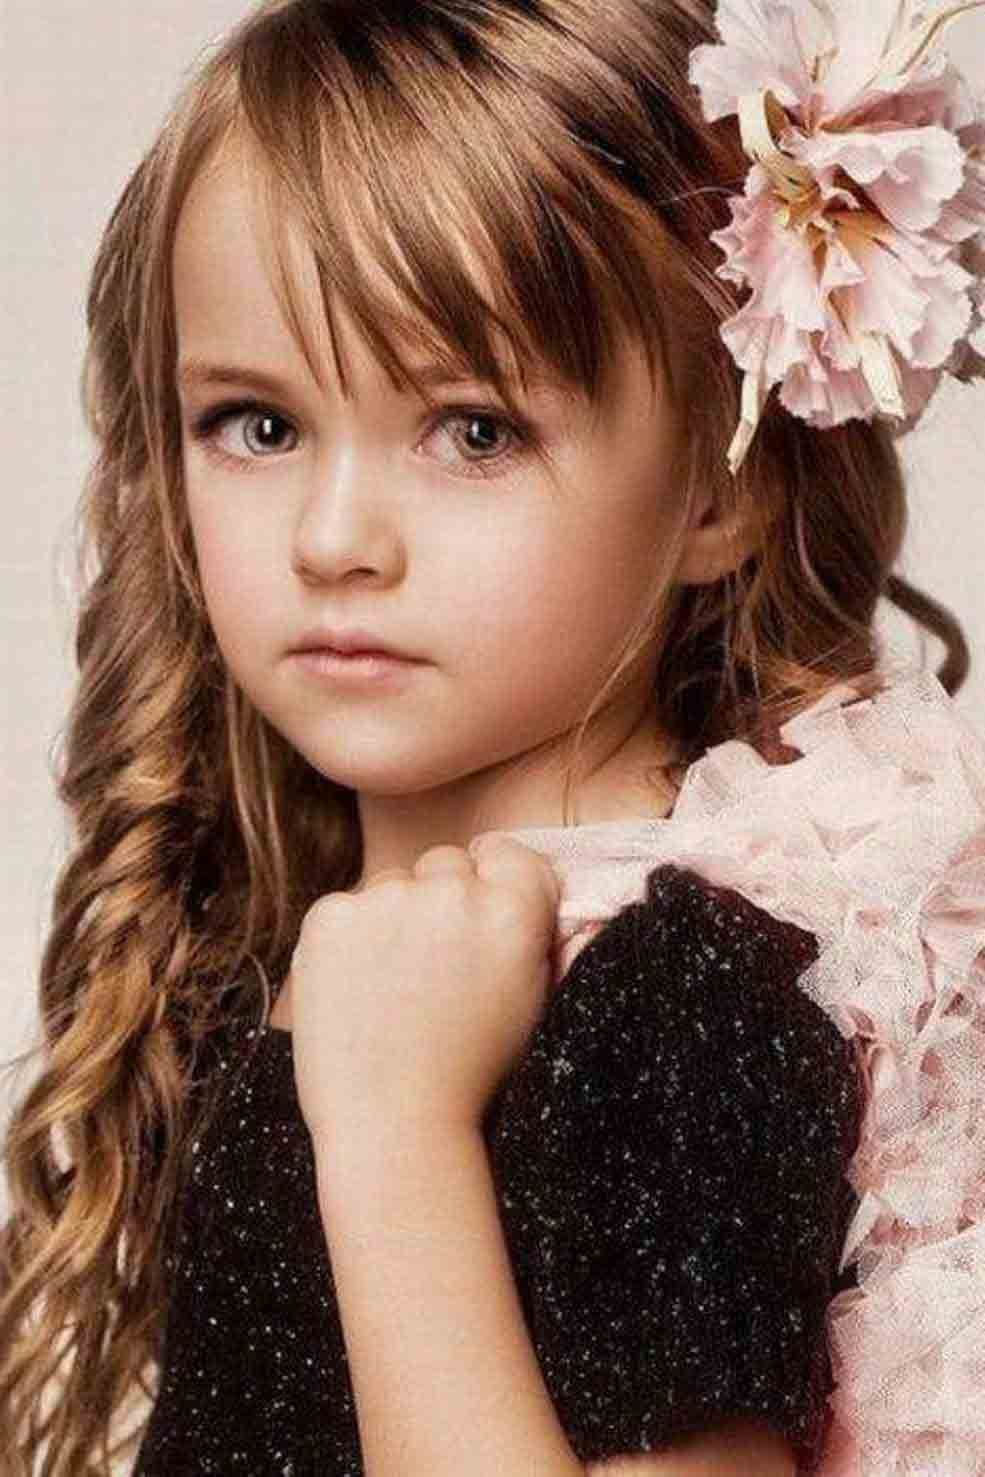 little girls hairstyles for eid 2018 in pakistan | hairstyle ideas